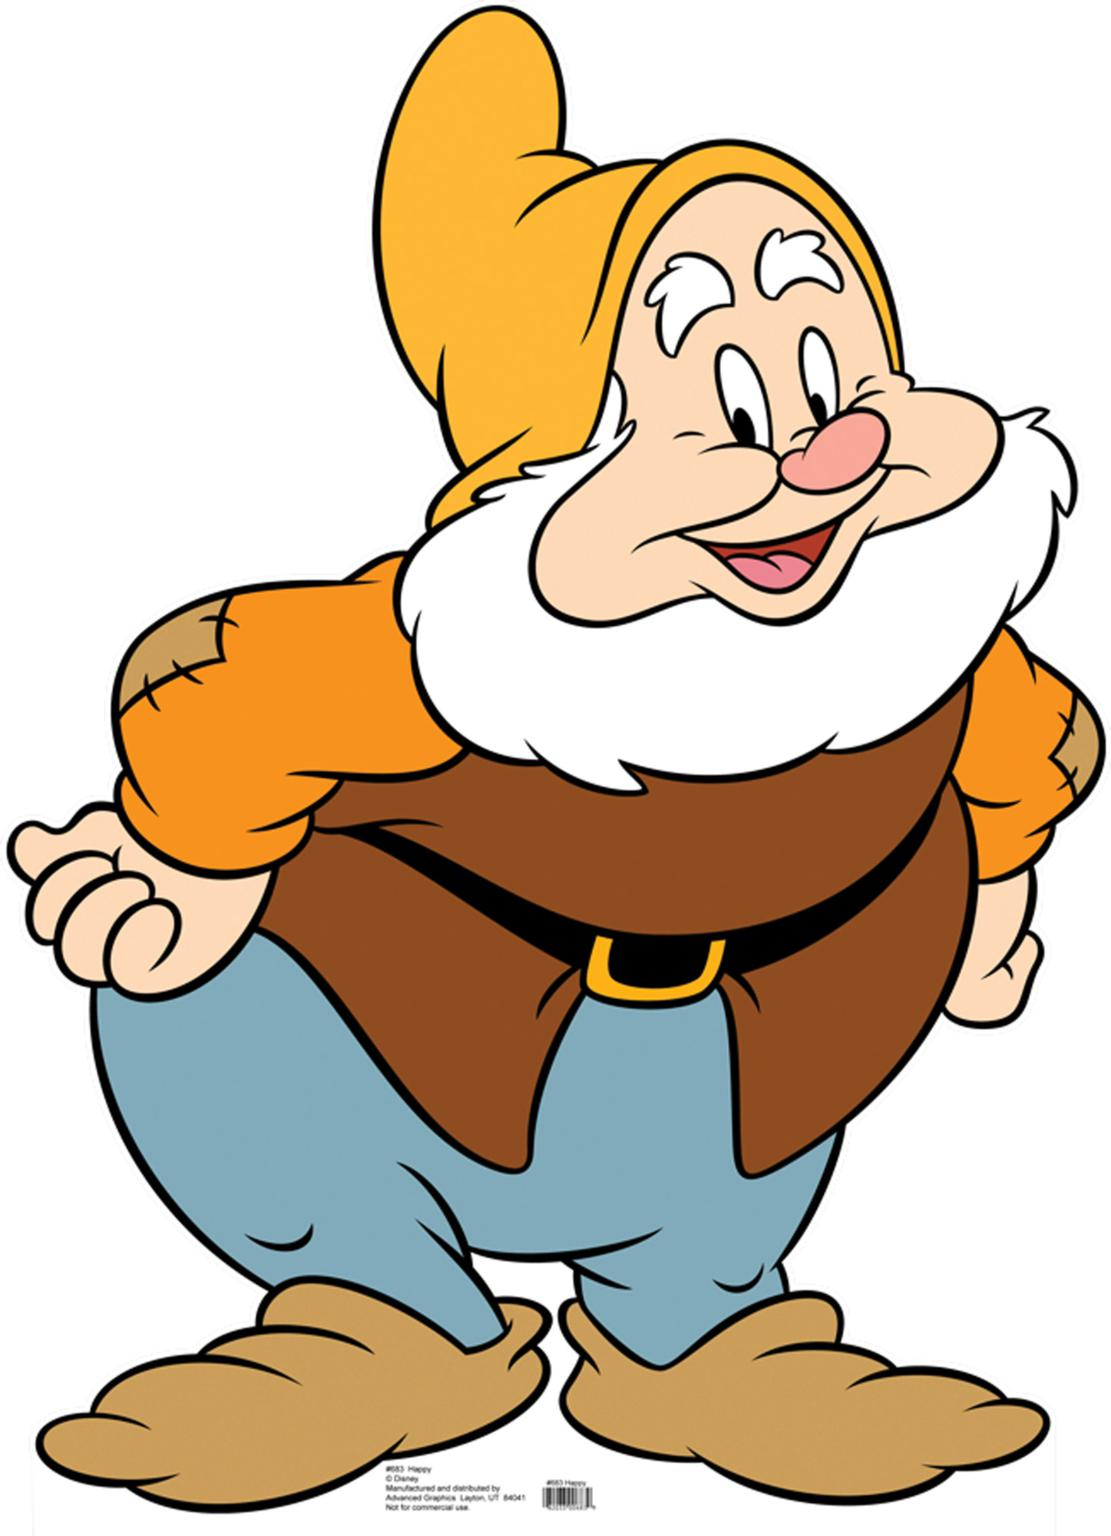 Clipart 7 dwarfs clipart royalty free download Free Dwarf Cliparts, Download Free Clip Art, Free Clip Art on ... clipart royalty free download